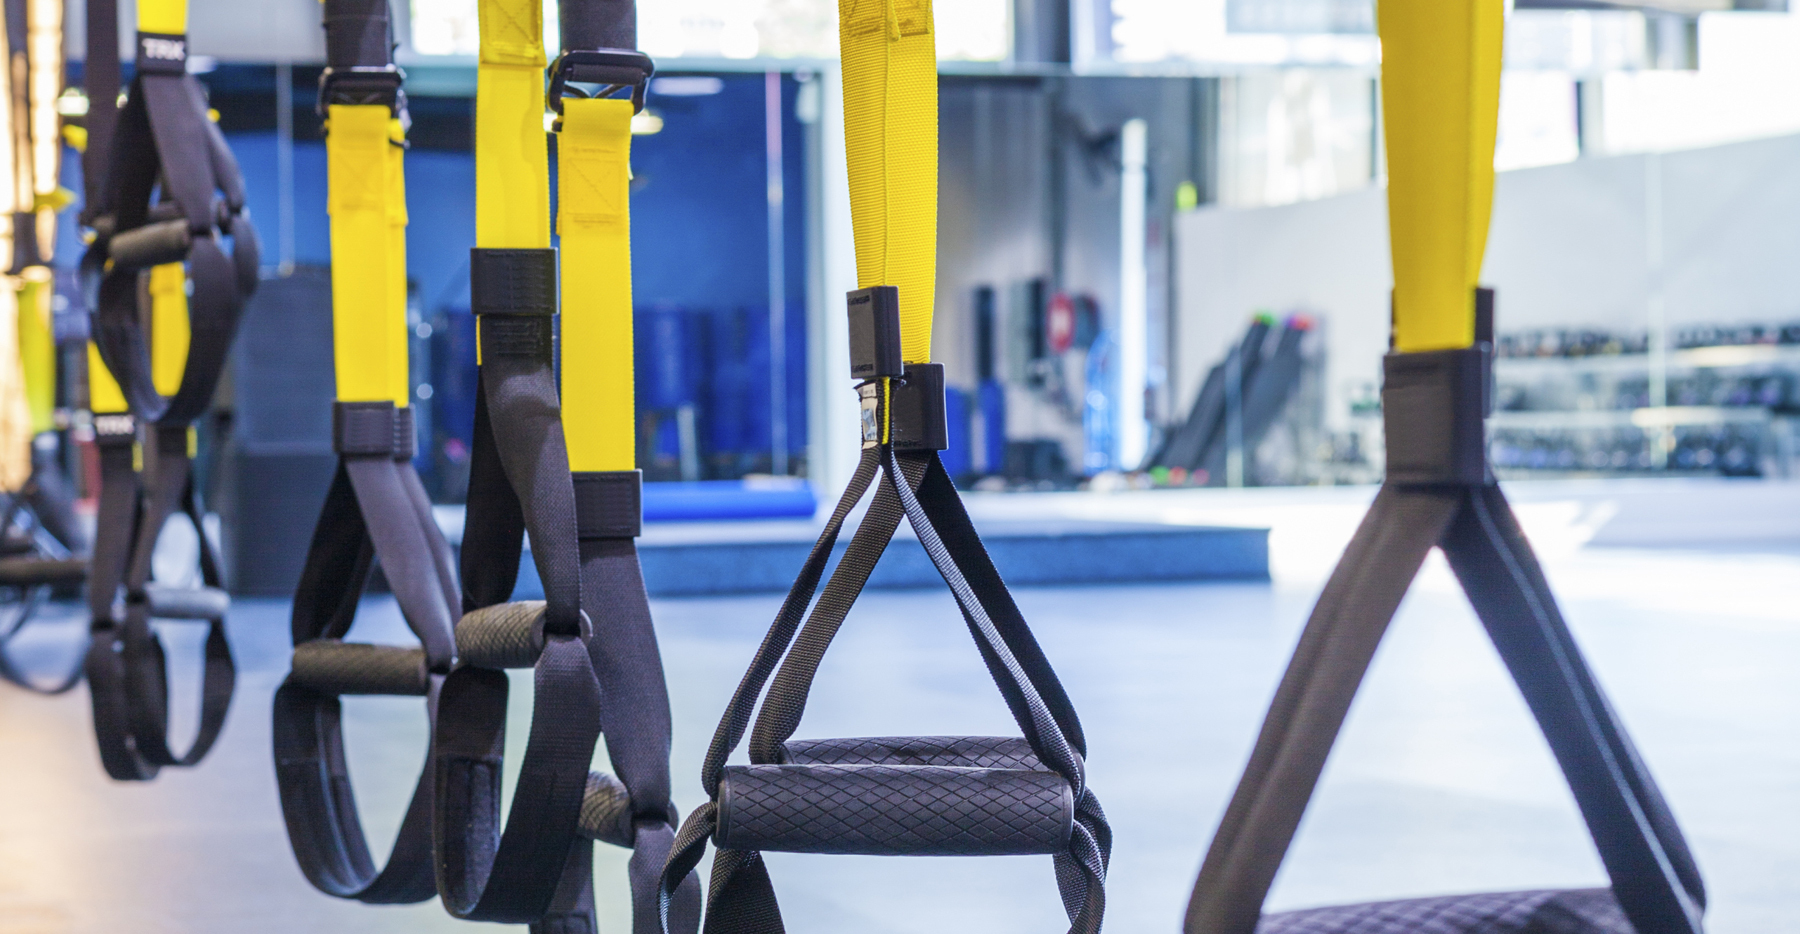 Trx Workouts: 44 Insanely Effective Trx Exercises | Greatist - Free Printable Trx Workouts